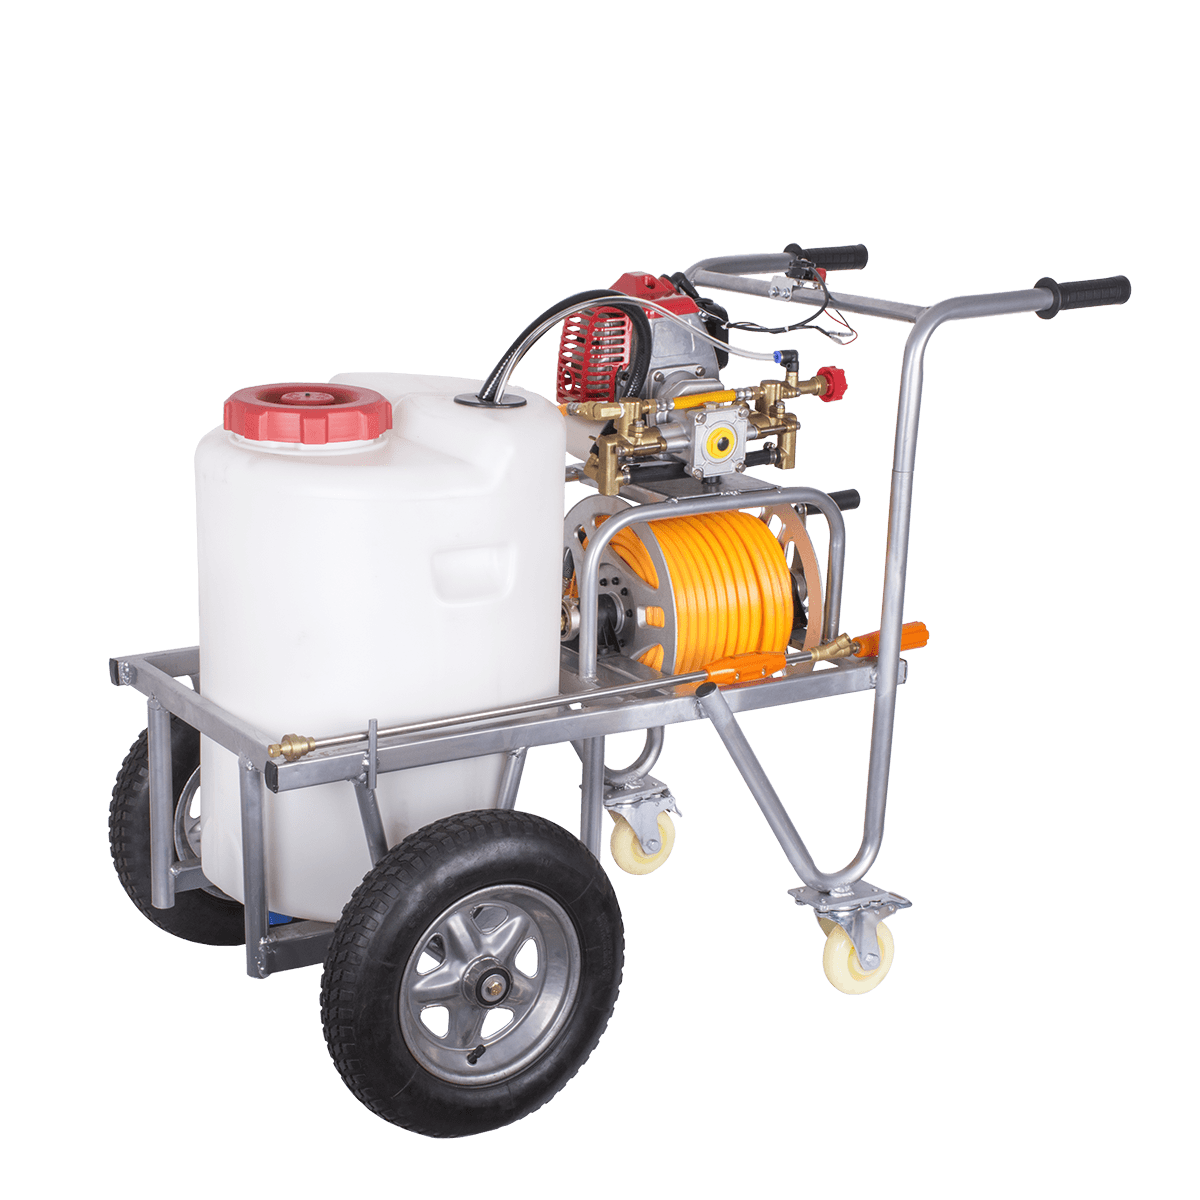 FST-1000B Wheeled Power Sprayer